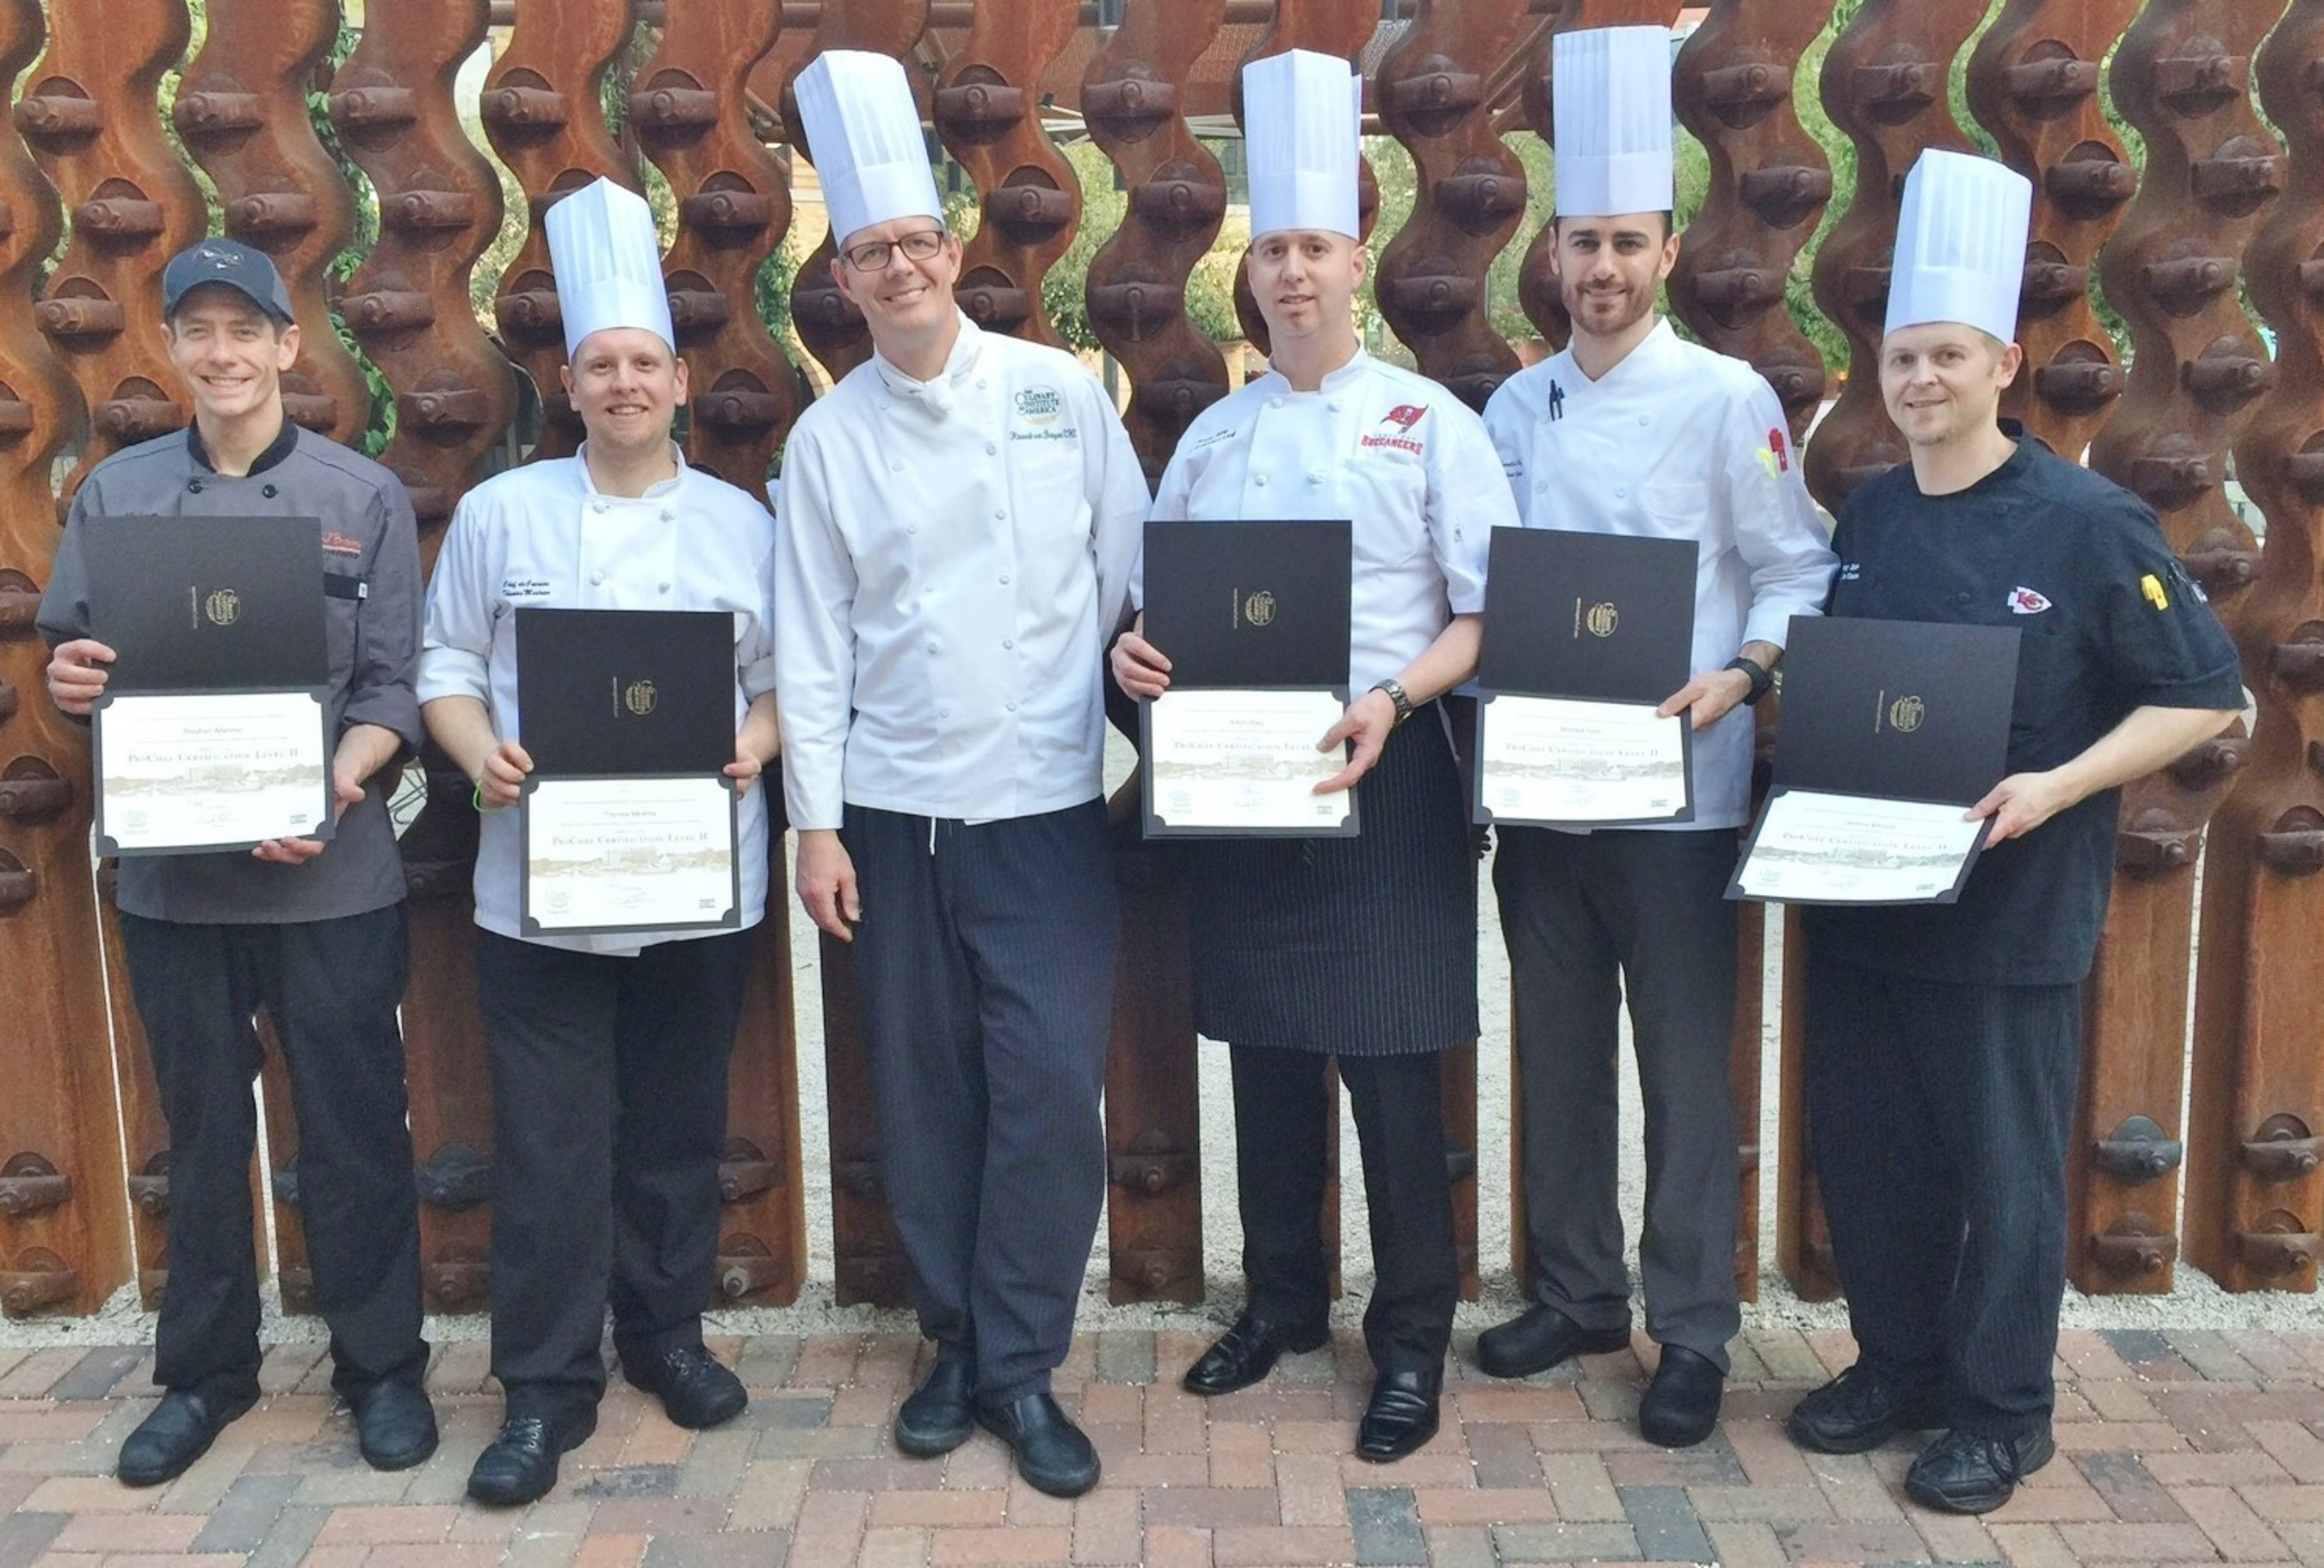 Aramark and The Culinary Institute of America are pleased to announce the graduation of 29 chefs from the prestigious ProChef(R) Certification program. The Aramark chefs pictured here serve stadiums, arenas, convention centers and entertainment venues across the United States and Canada, and join the more than 200 Aramark chefs who have already received their ProChef certification.